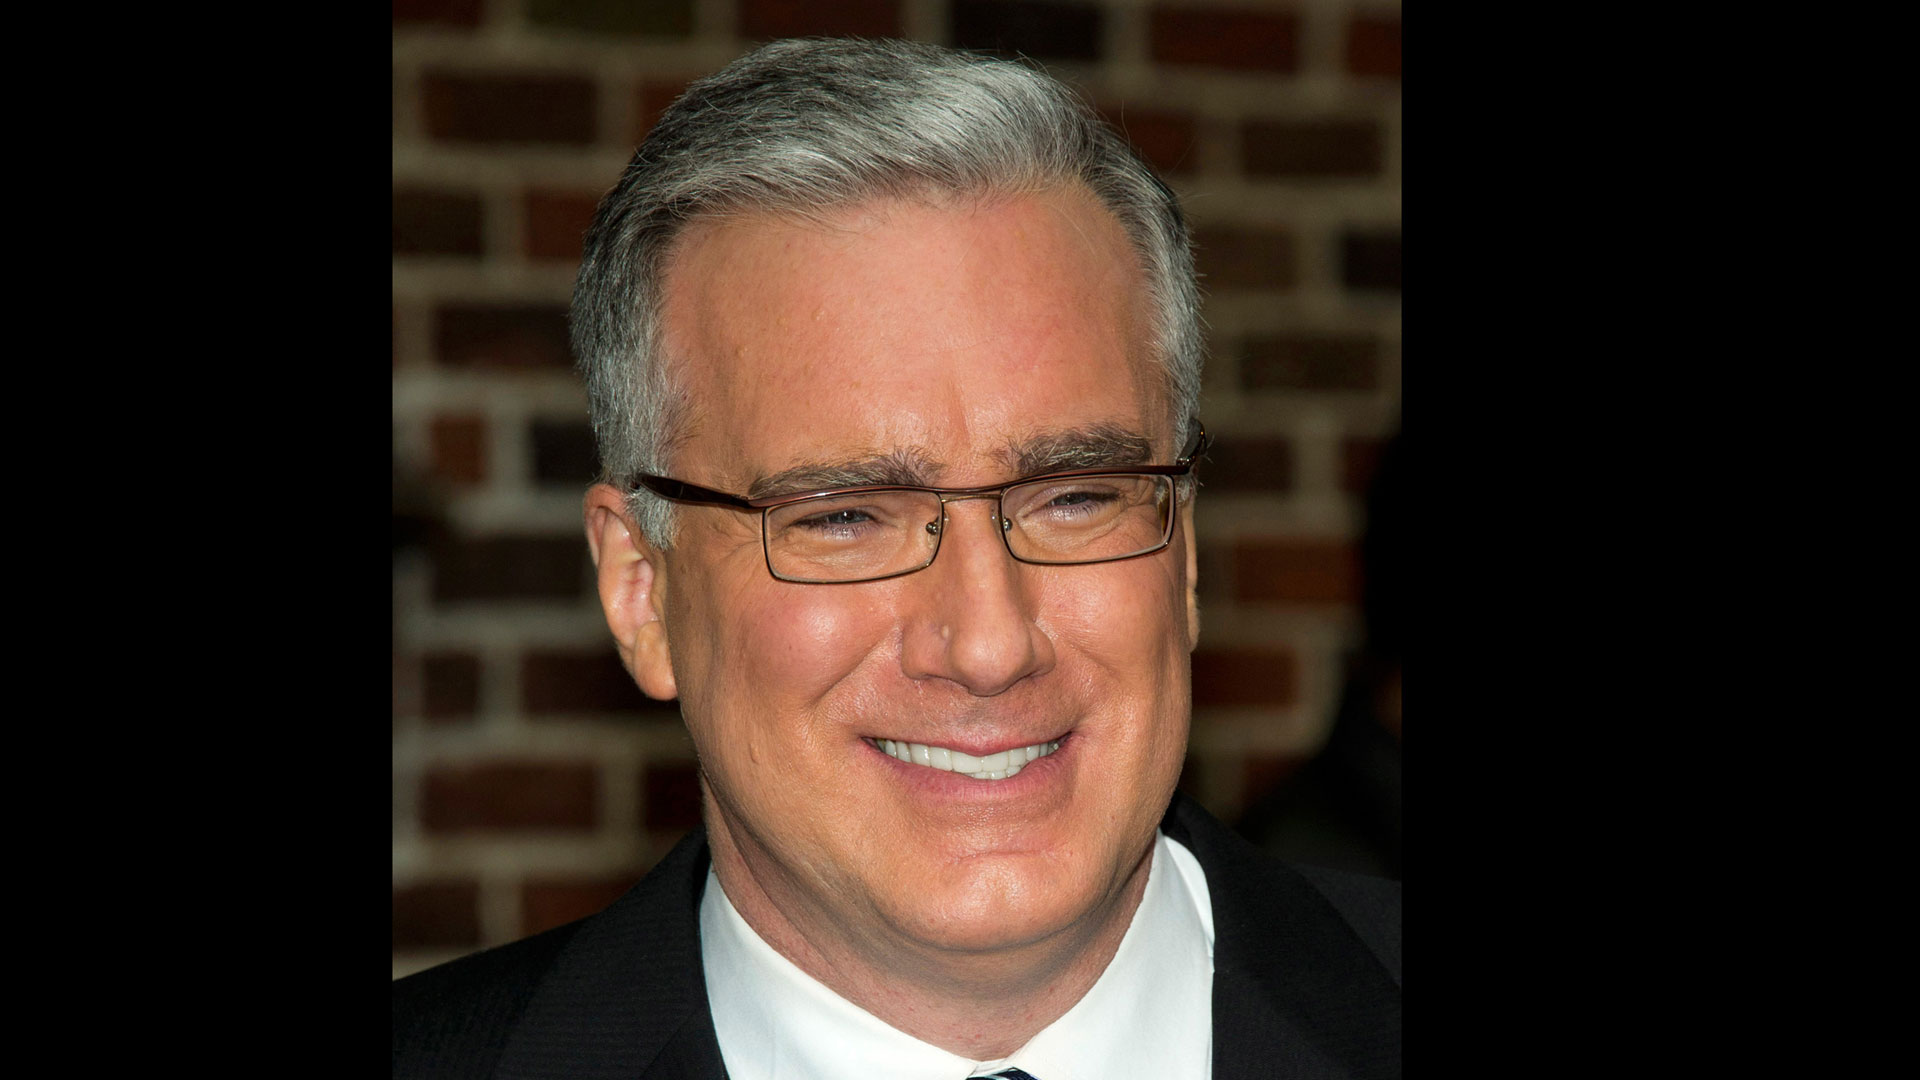 Keith-Olbermann-FTR-AP-11614